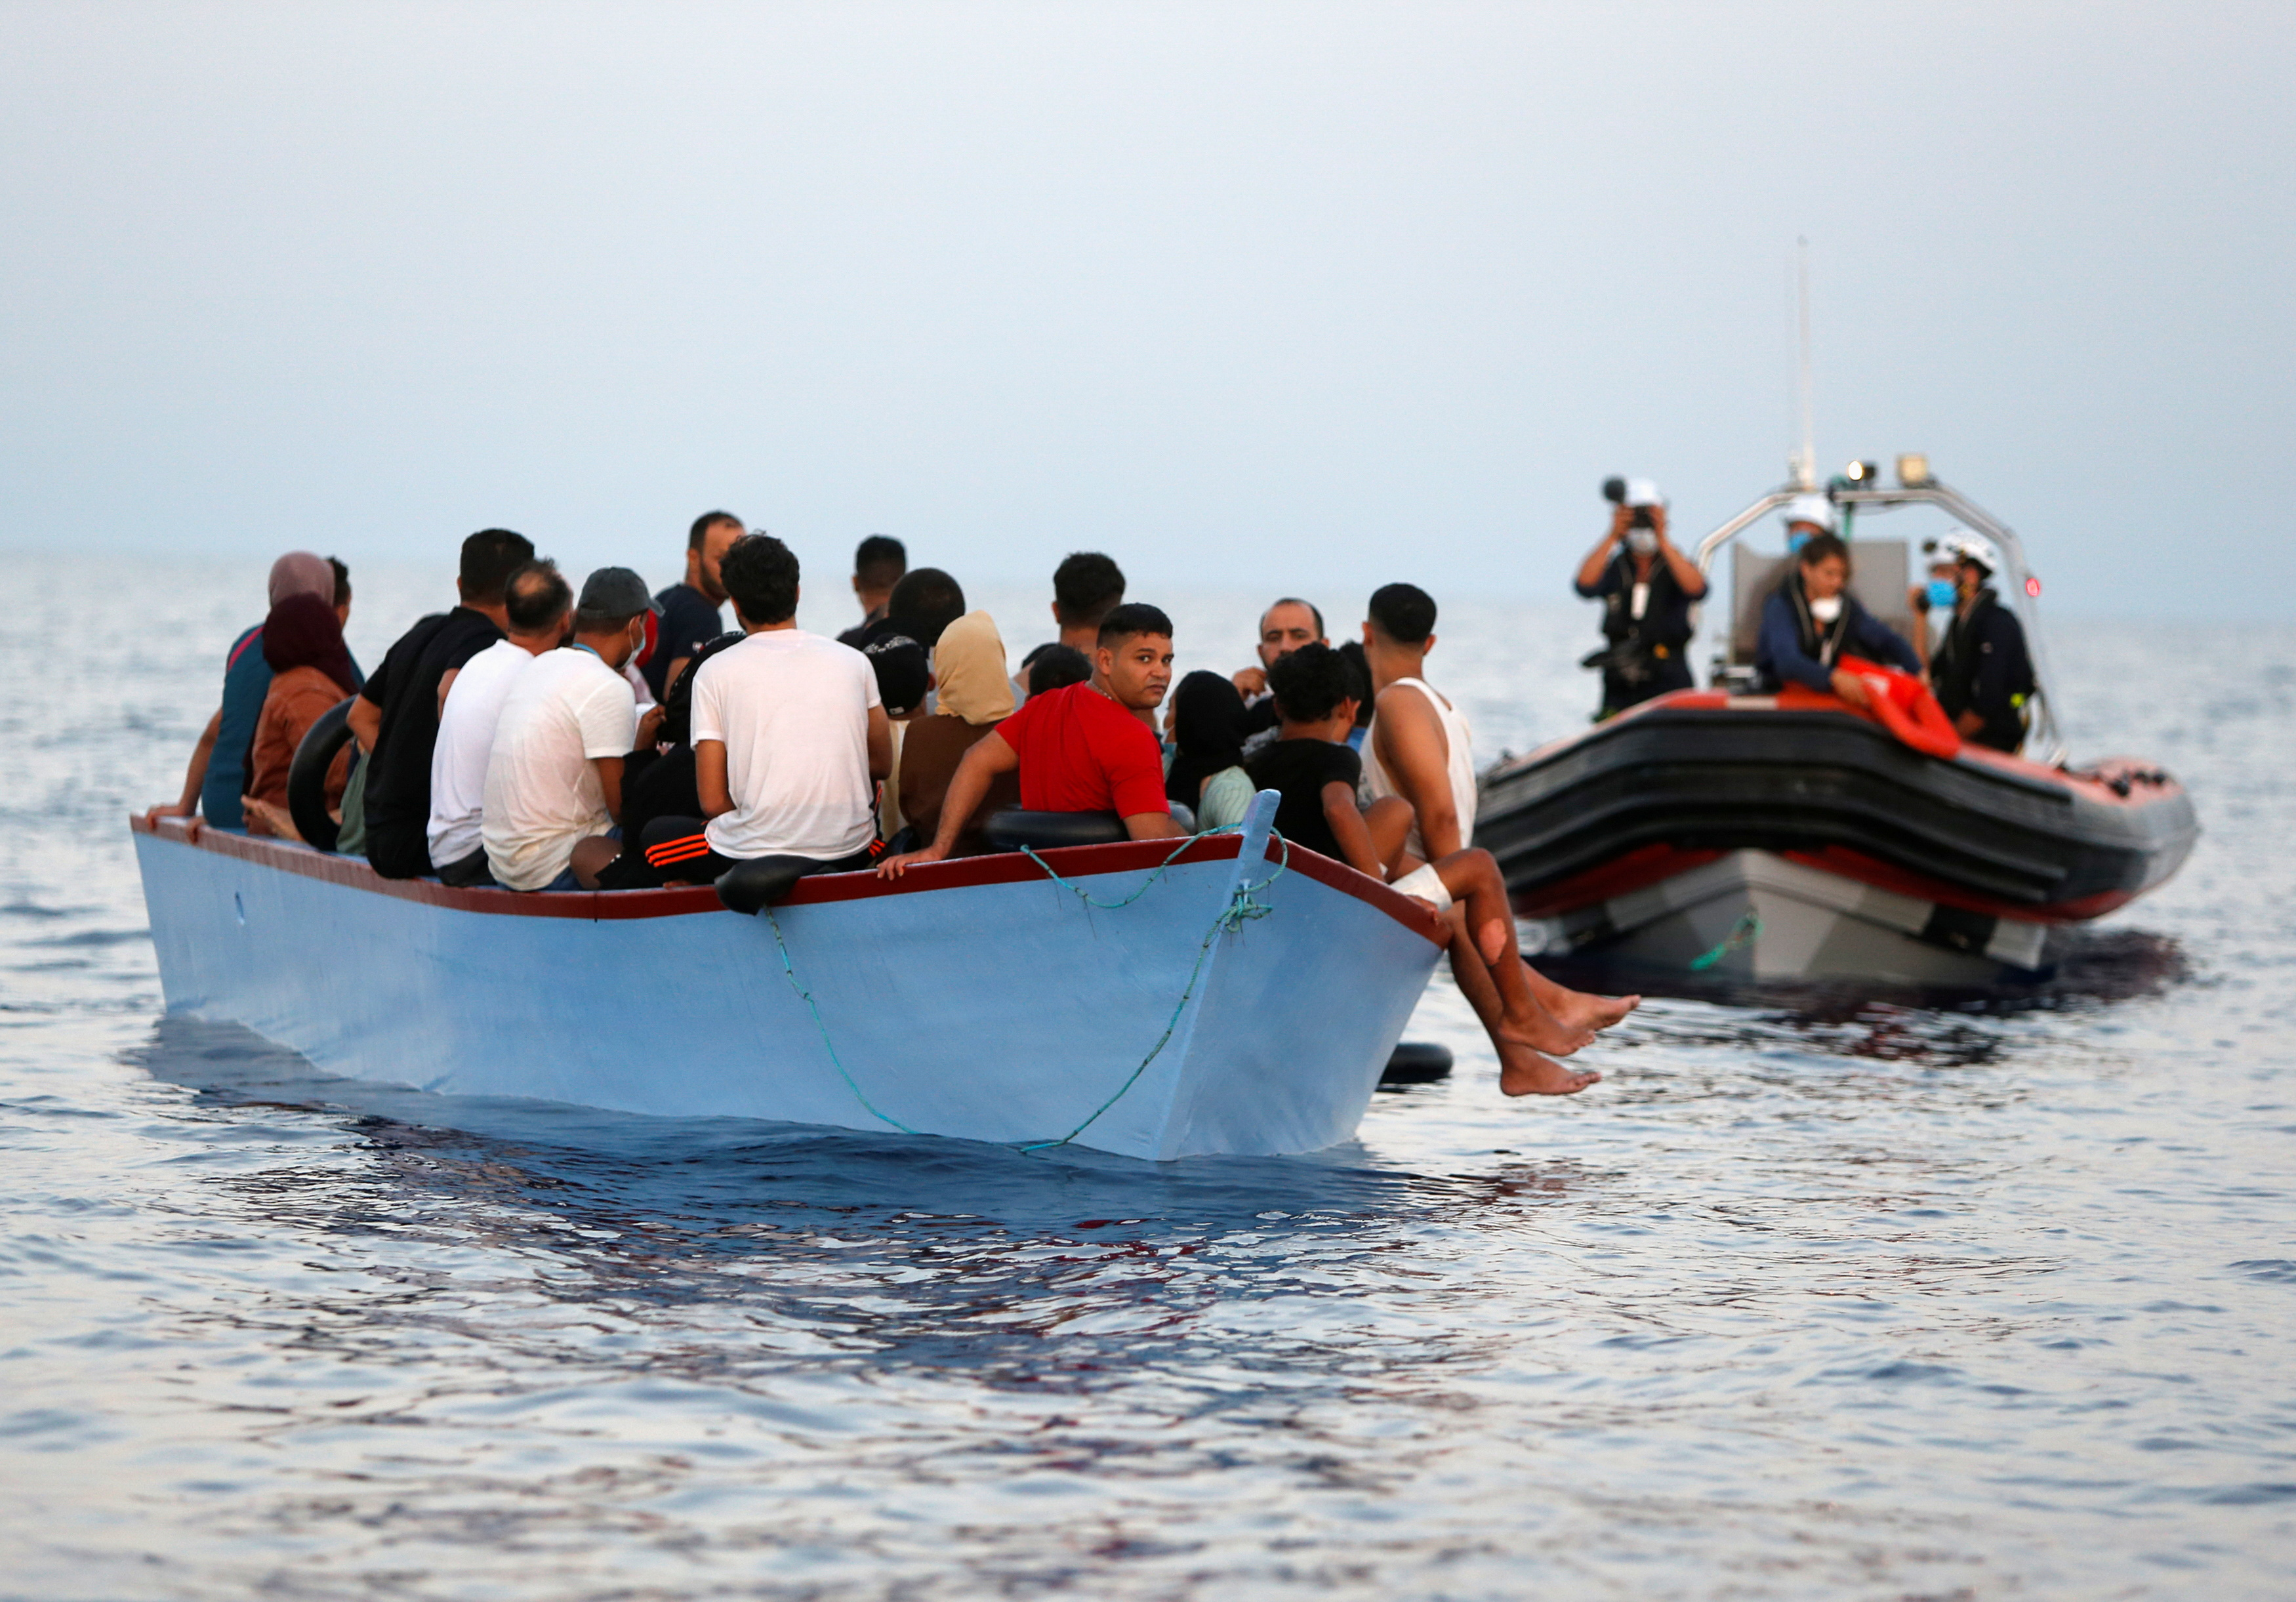 Migrants wait in a boat to be rescued by the crew of the German NGO migrant rescue ship Sea-Watch 3 in international waters off the coast of Libya, in the western Mediterranean Sea, July 30, 2021.  REUTERS/Darrin Zammit Lupi